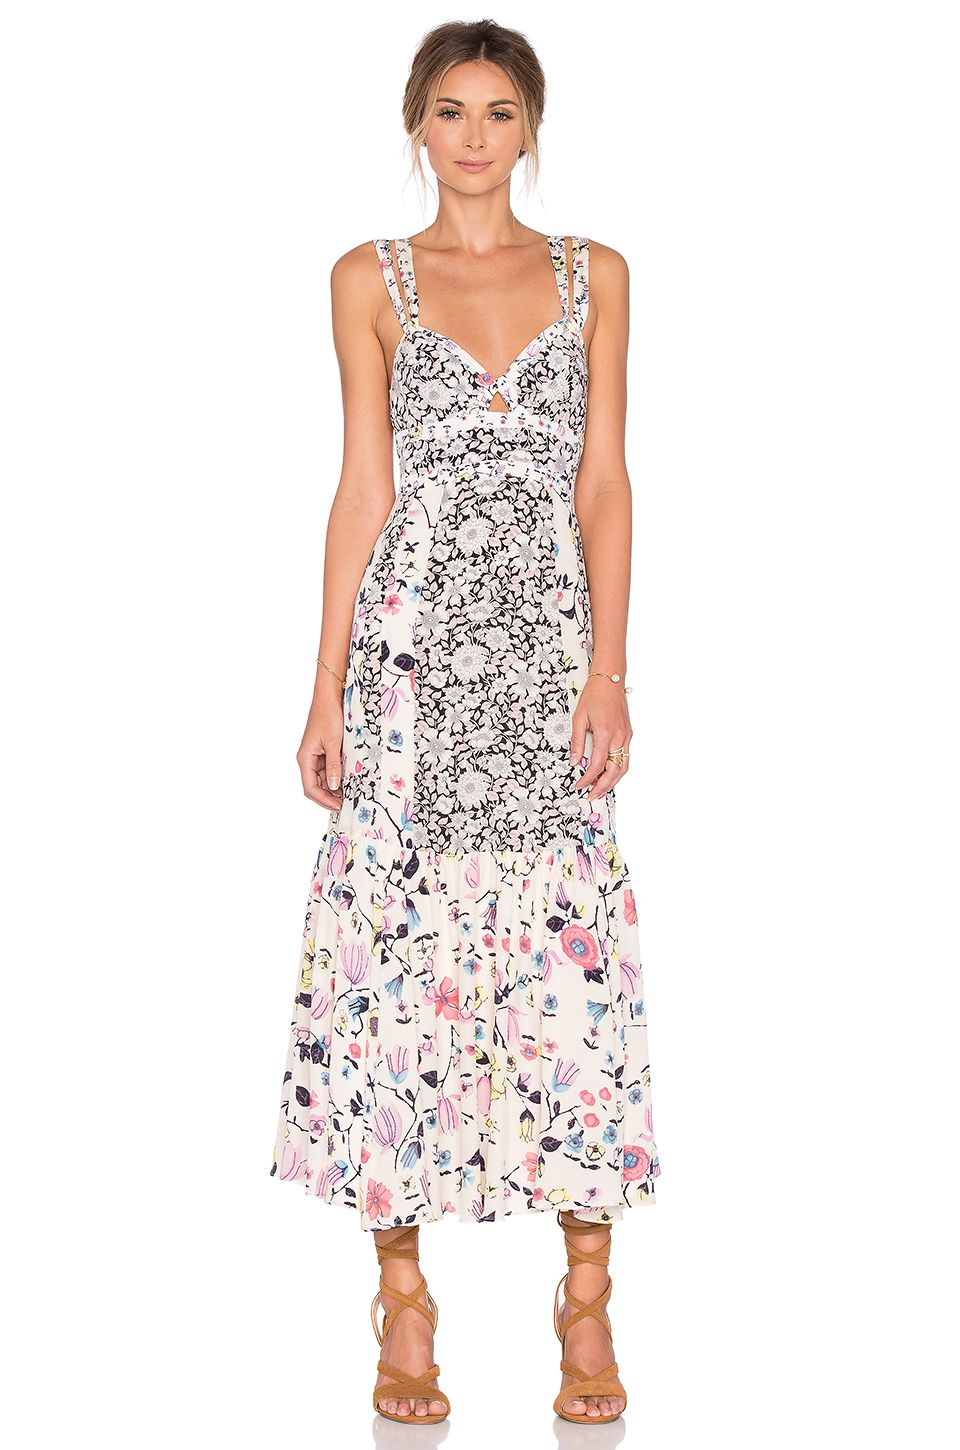 For Rebecca Taylor Sleeveless Tapestry Garden Dress In Creamsicle At Revolve Free Day Shipping And Returns 30 Price Match Guarantee